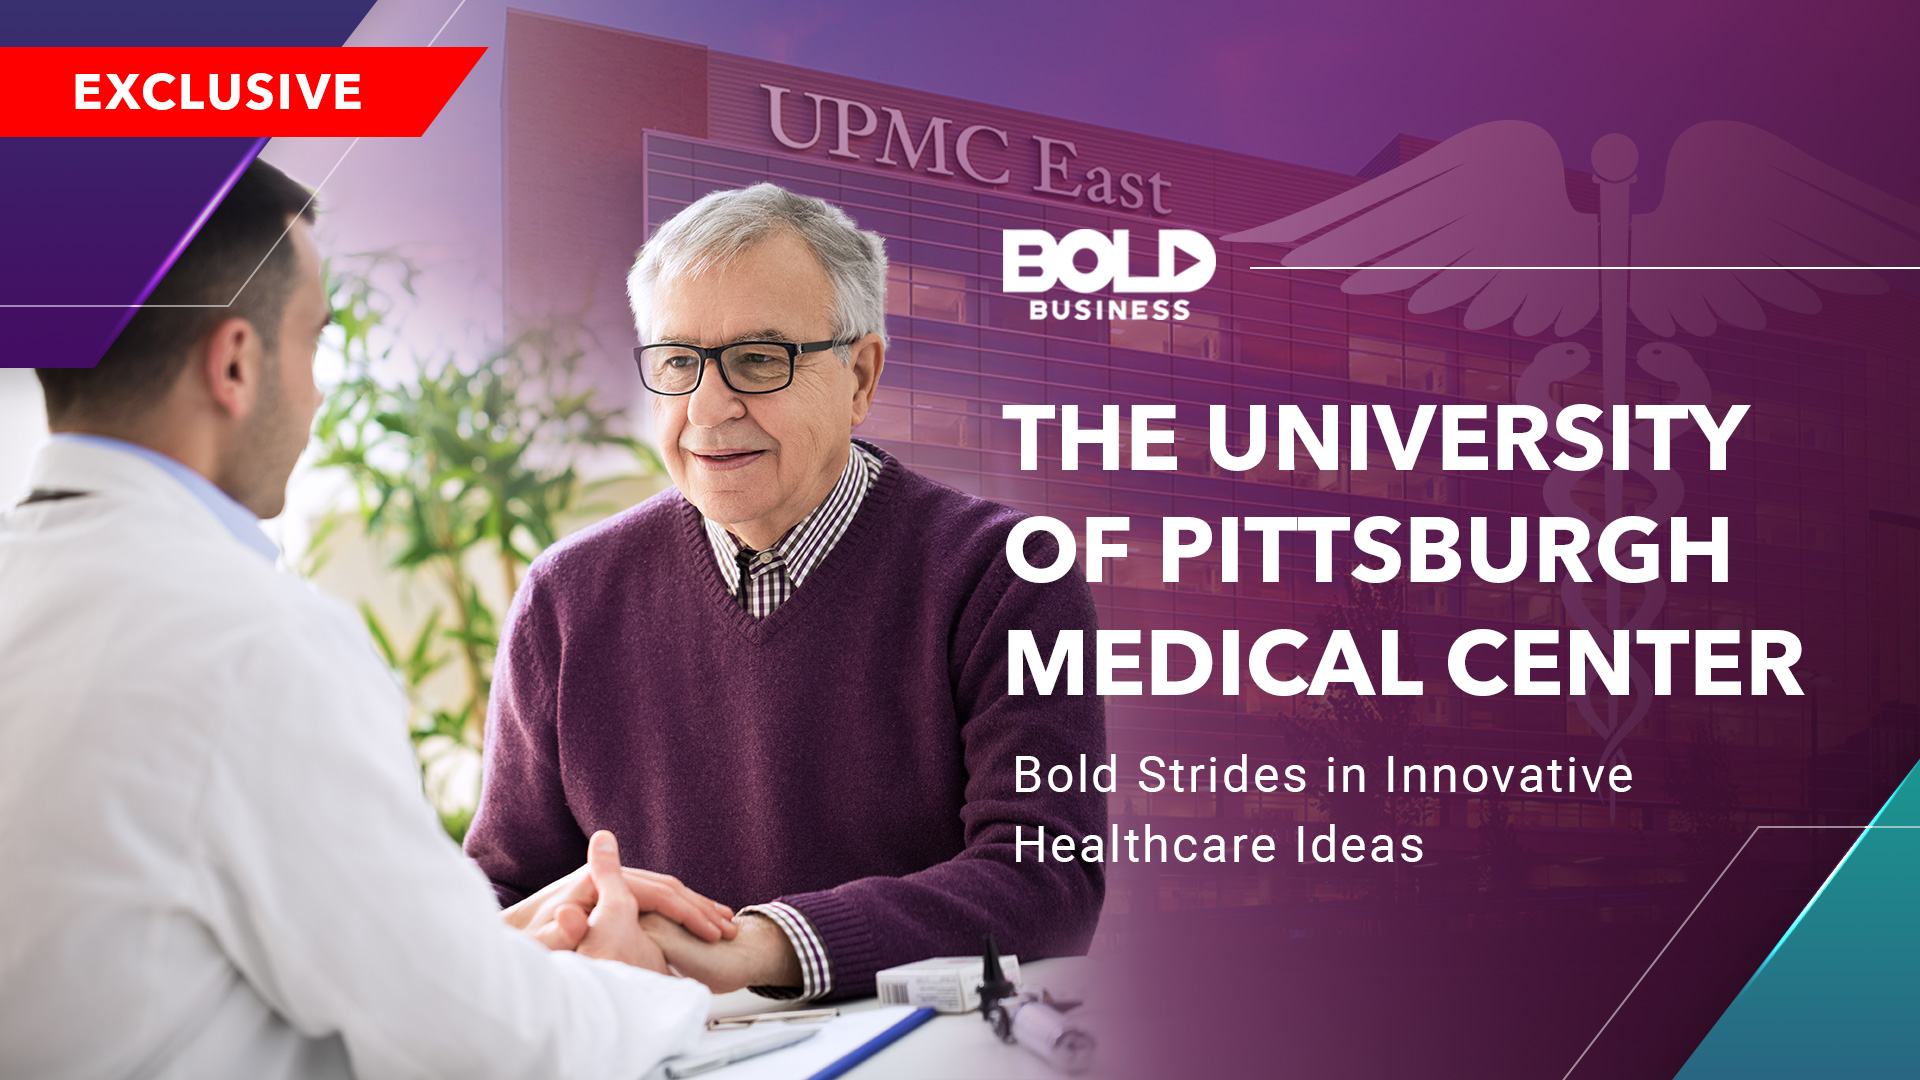 The University of Pittsburgh Medical Center —Bold Strides in Innovative Healthcare Ideas